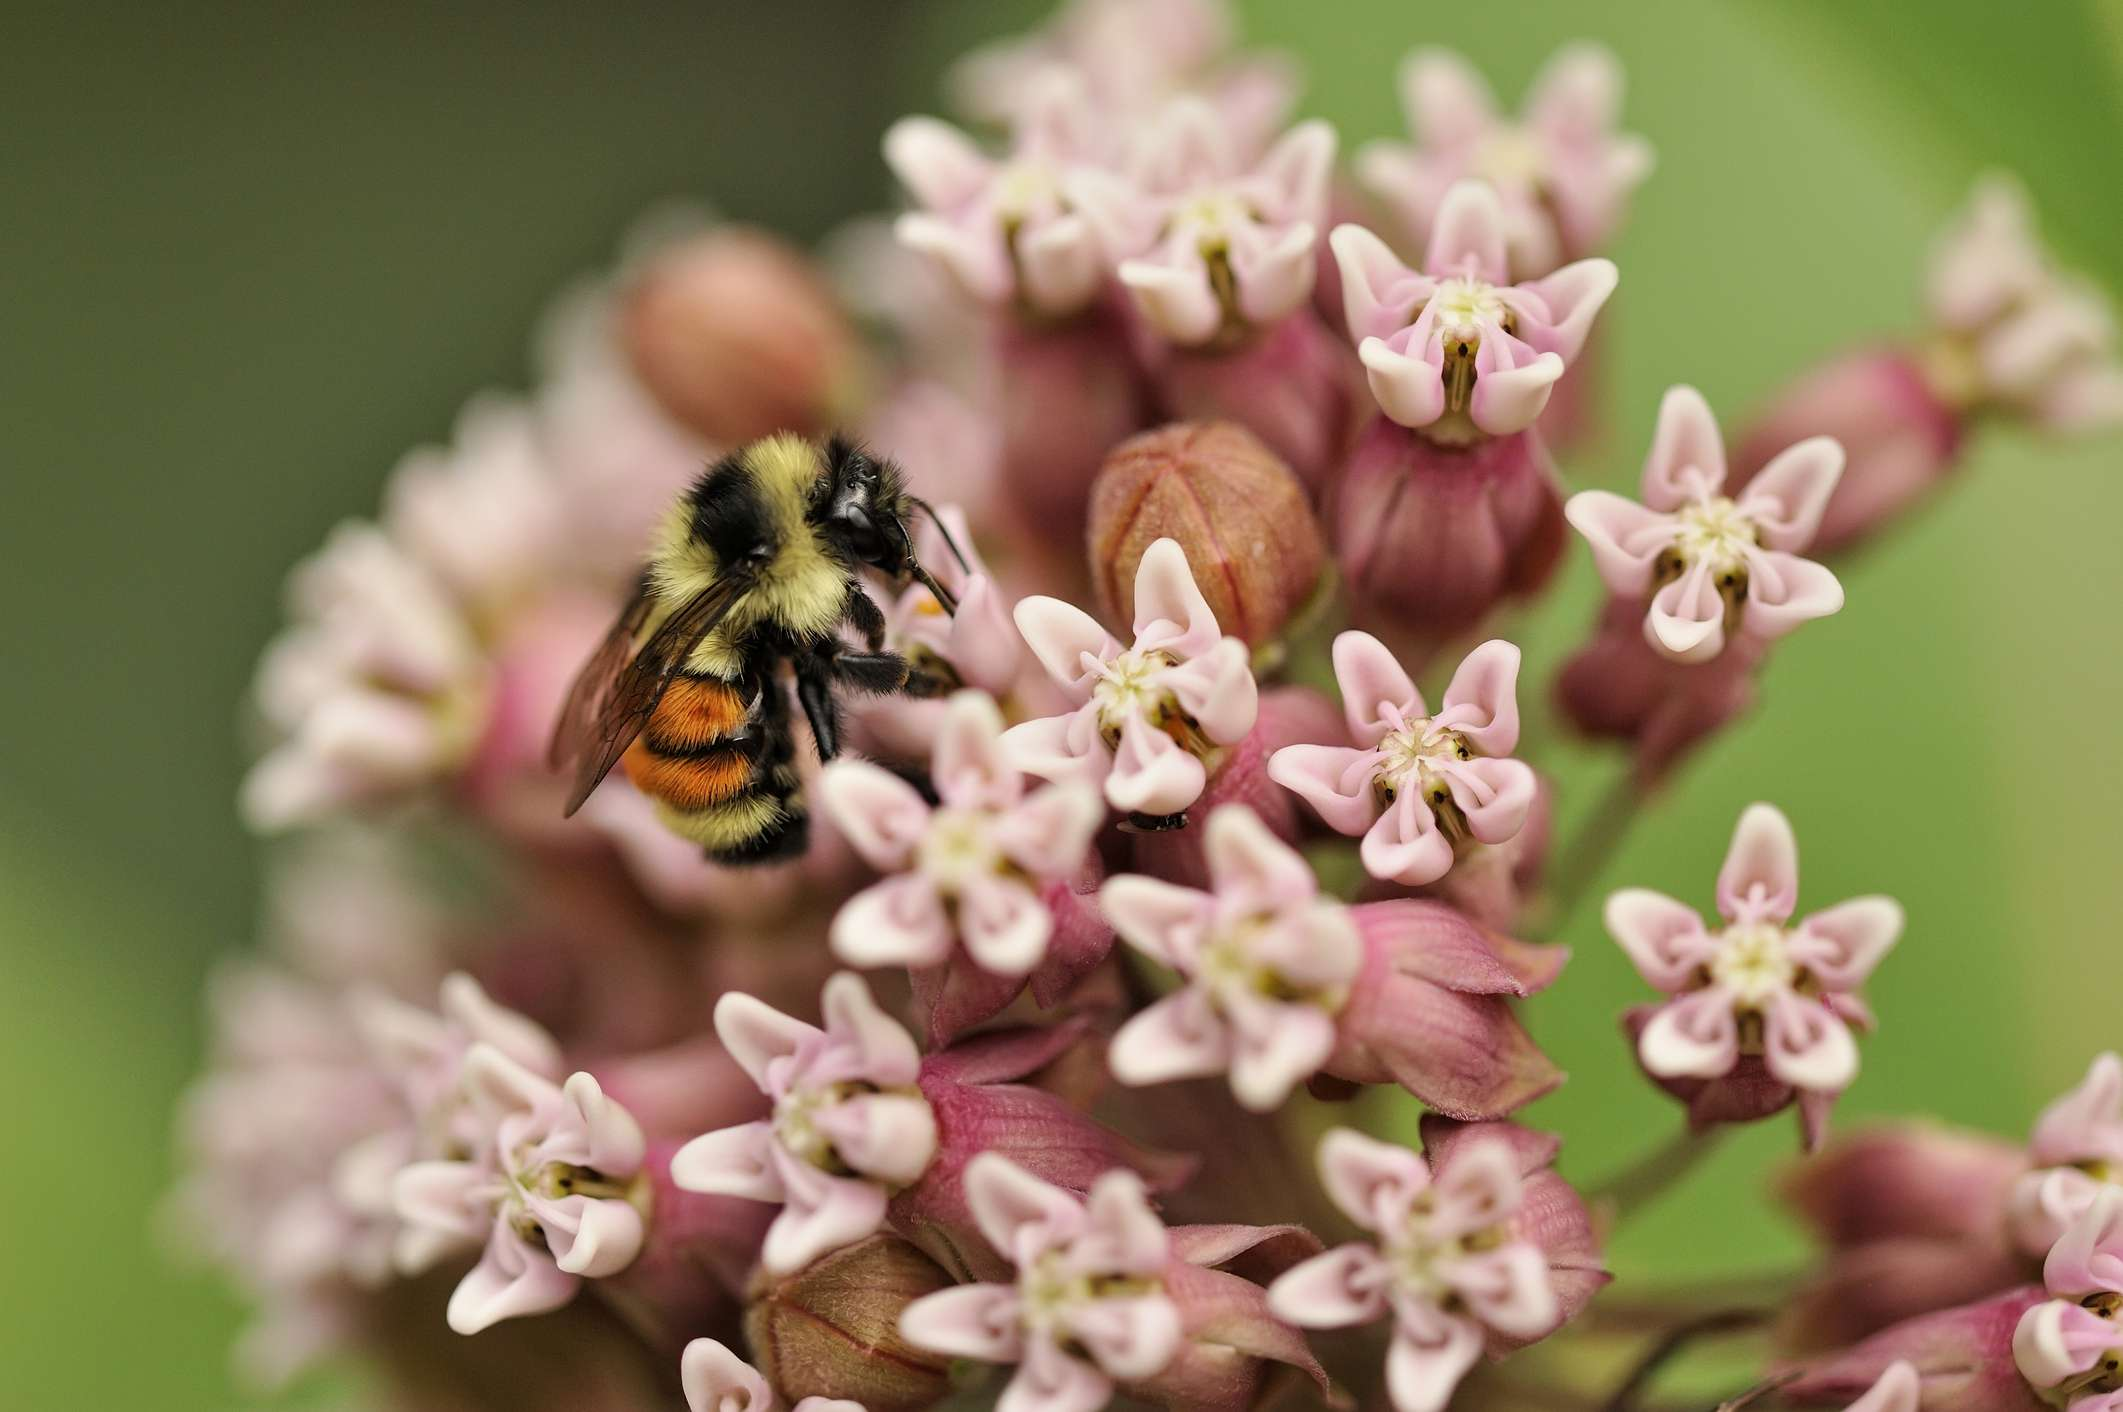 Bumblebee, nectaring on common milkweed